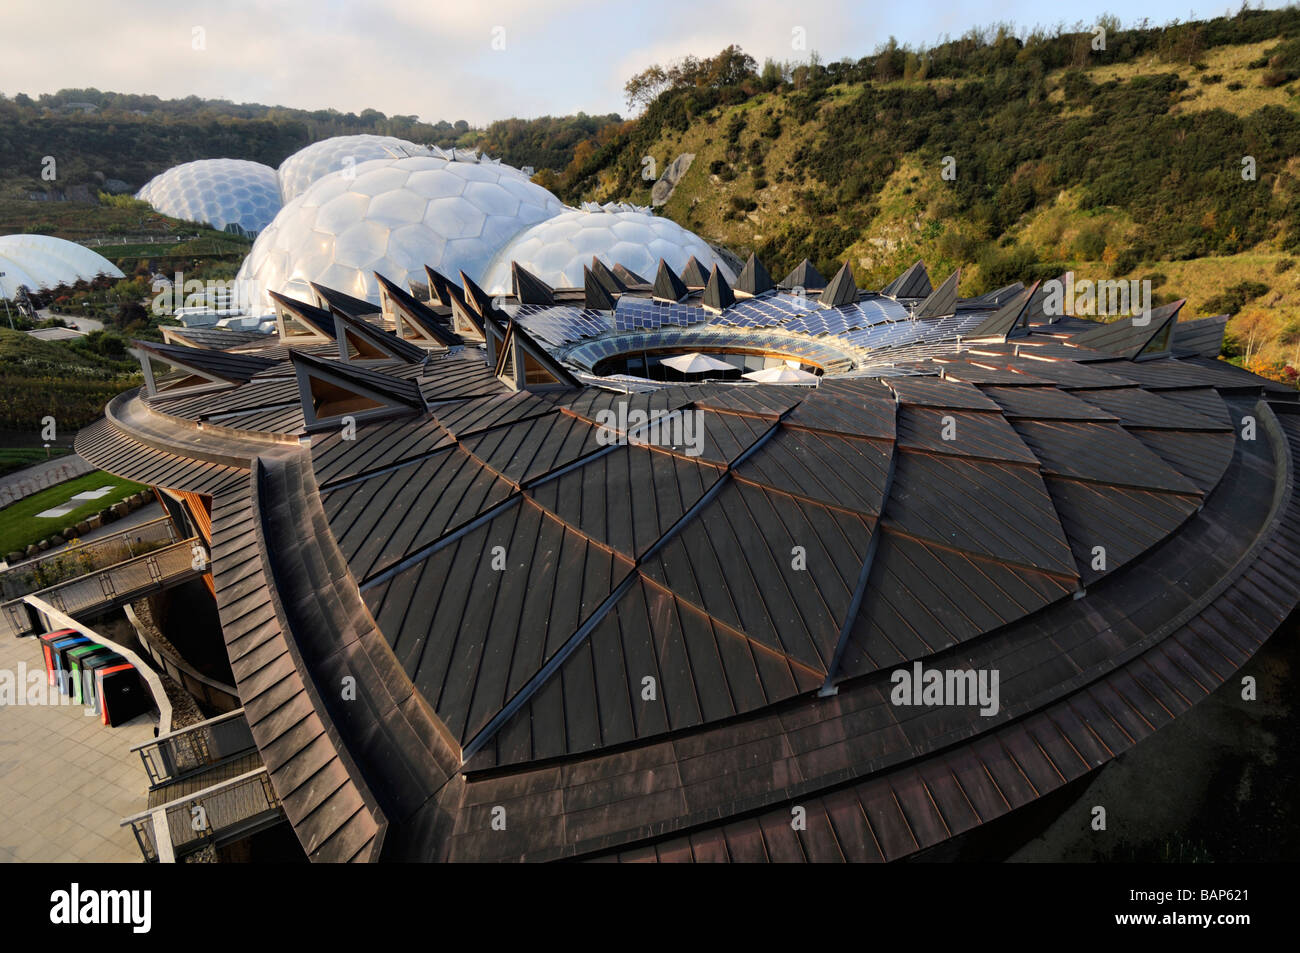 The core Biomes Eden project - Stock Image